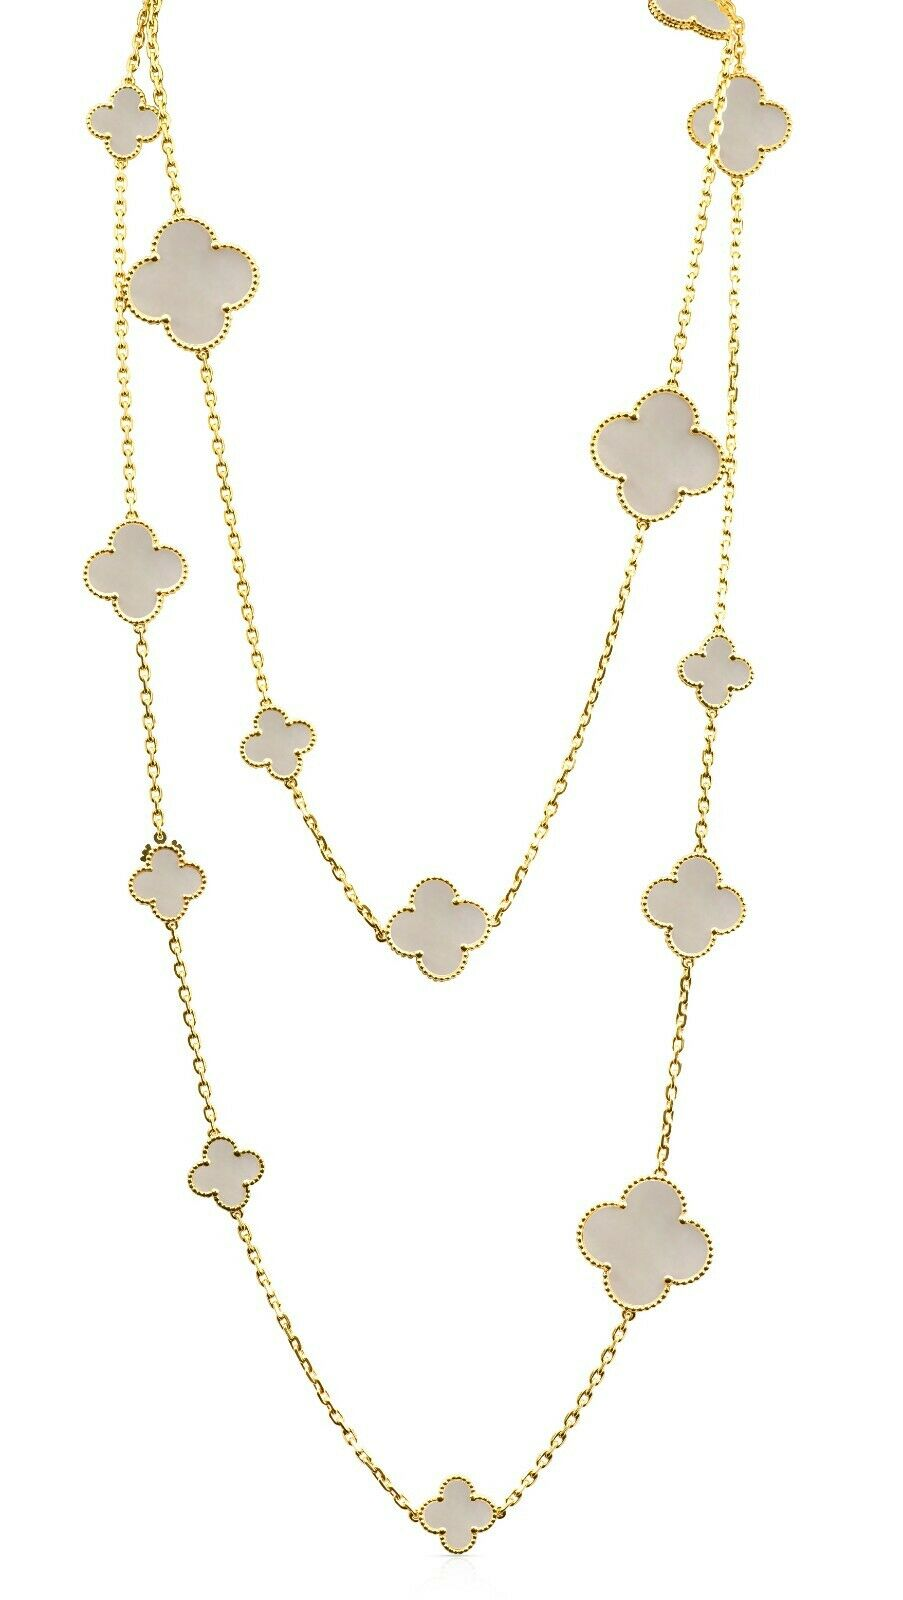 Long Solid Mother of Pearl Multi Sized Yellow Gold Clover Necklace 44 inches - wear long or double up Yellow Gold Titanium